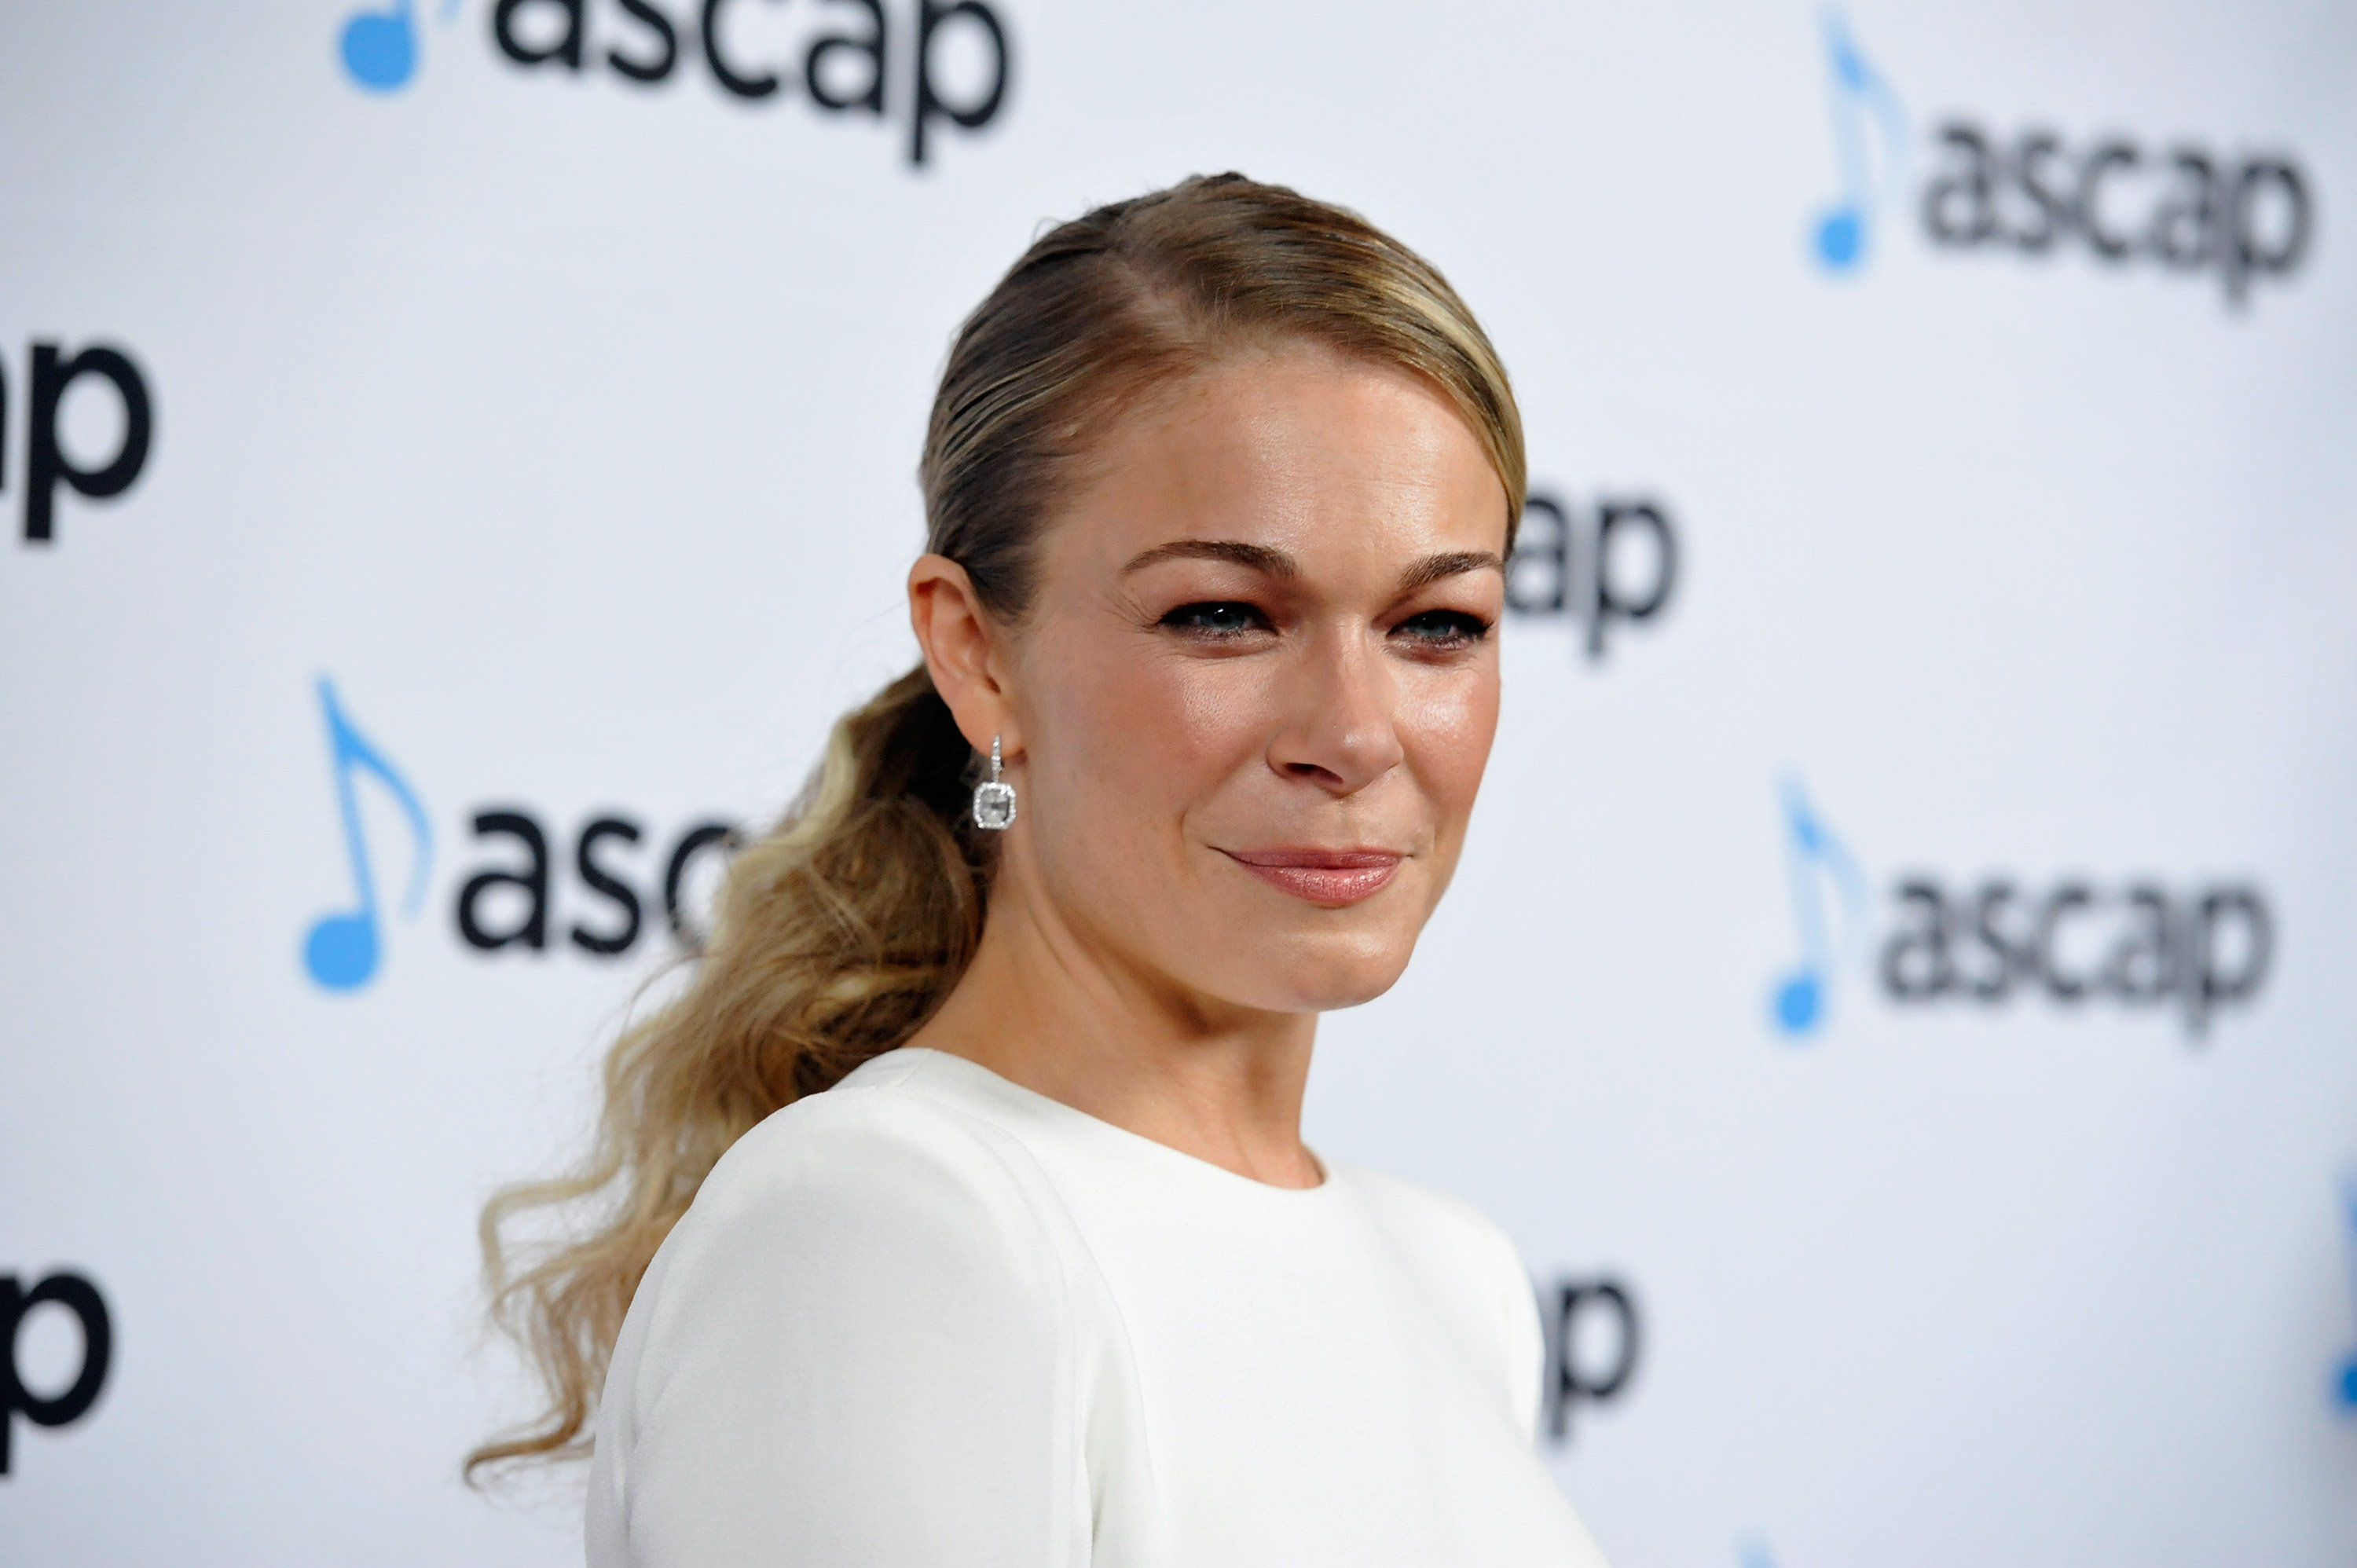 LeAnn Rimes attends the 34th Annual ASCAP Pop Music Awards on May 18, 2017, in Los Angeles. | Source: Getty Images.